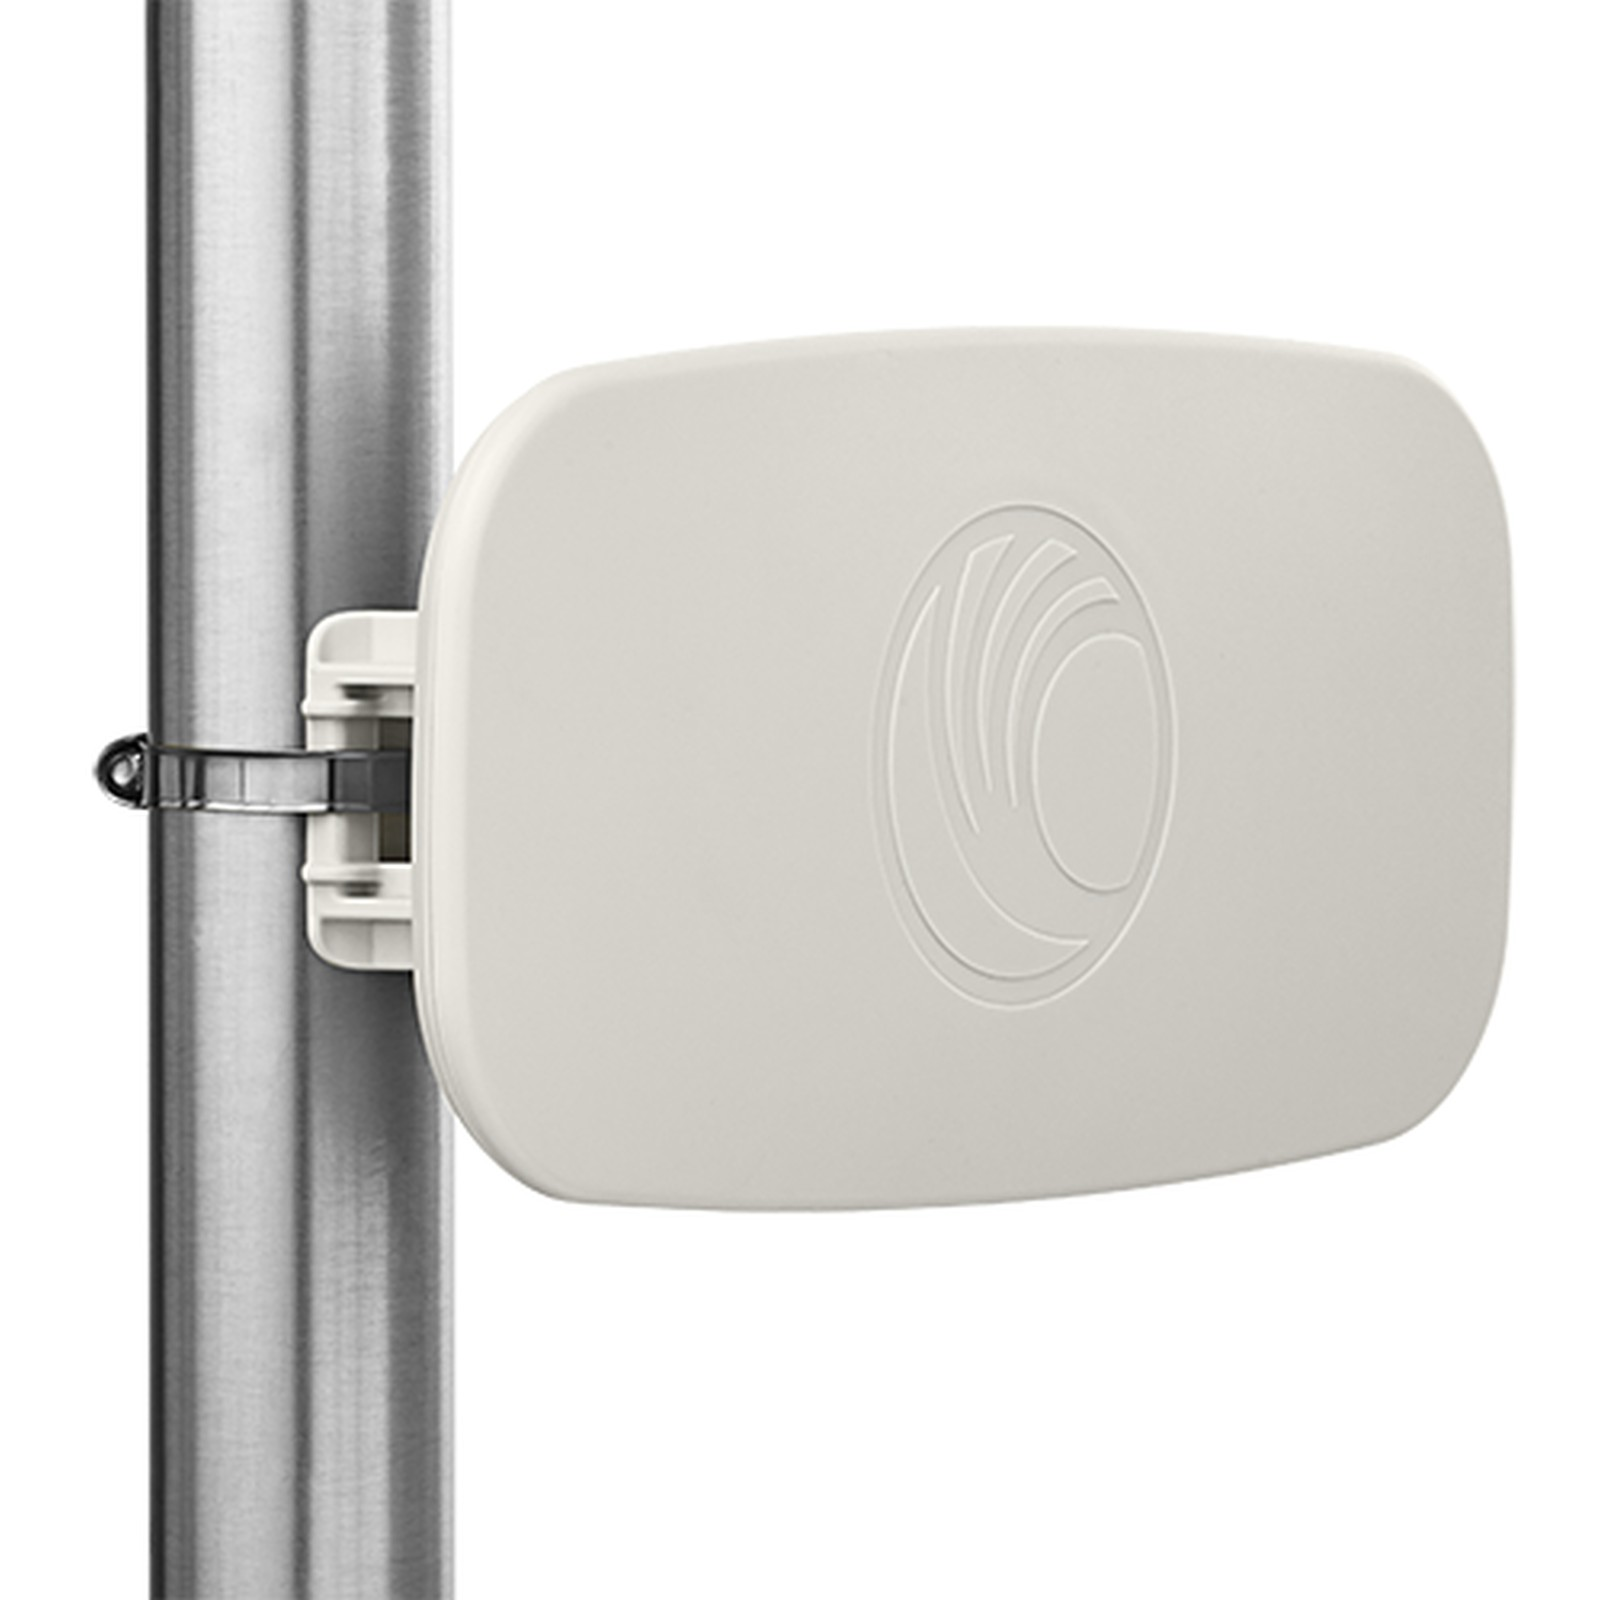 Cambium ePMP Force 180 Integrated Radio 5 GHz